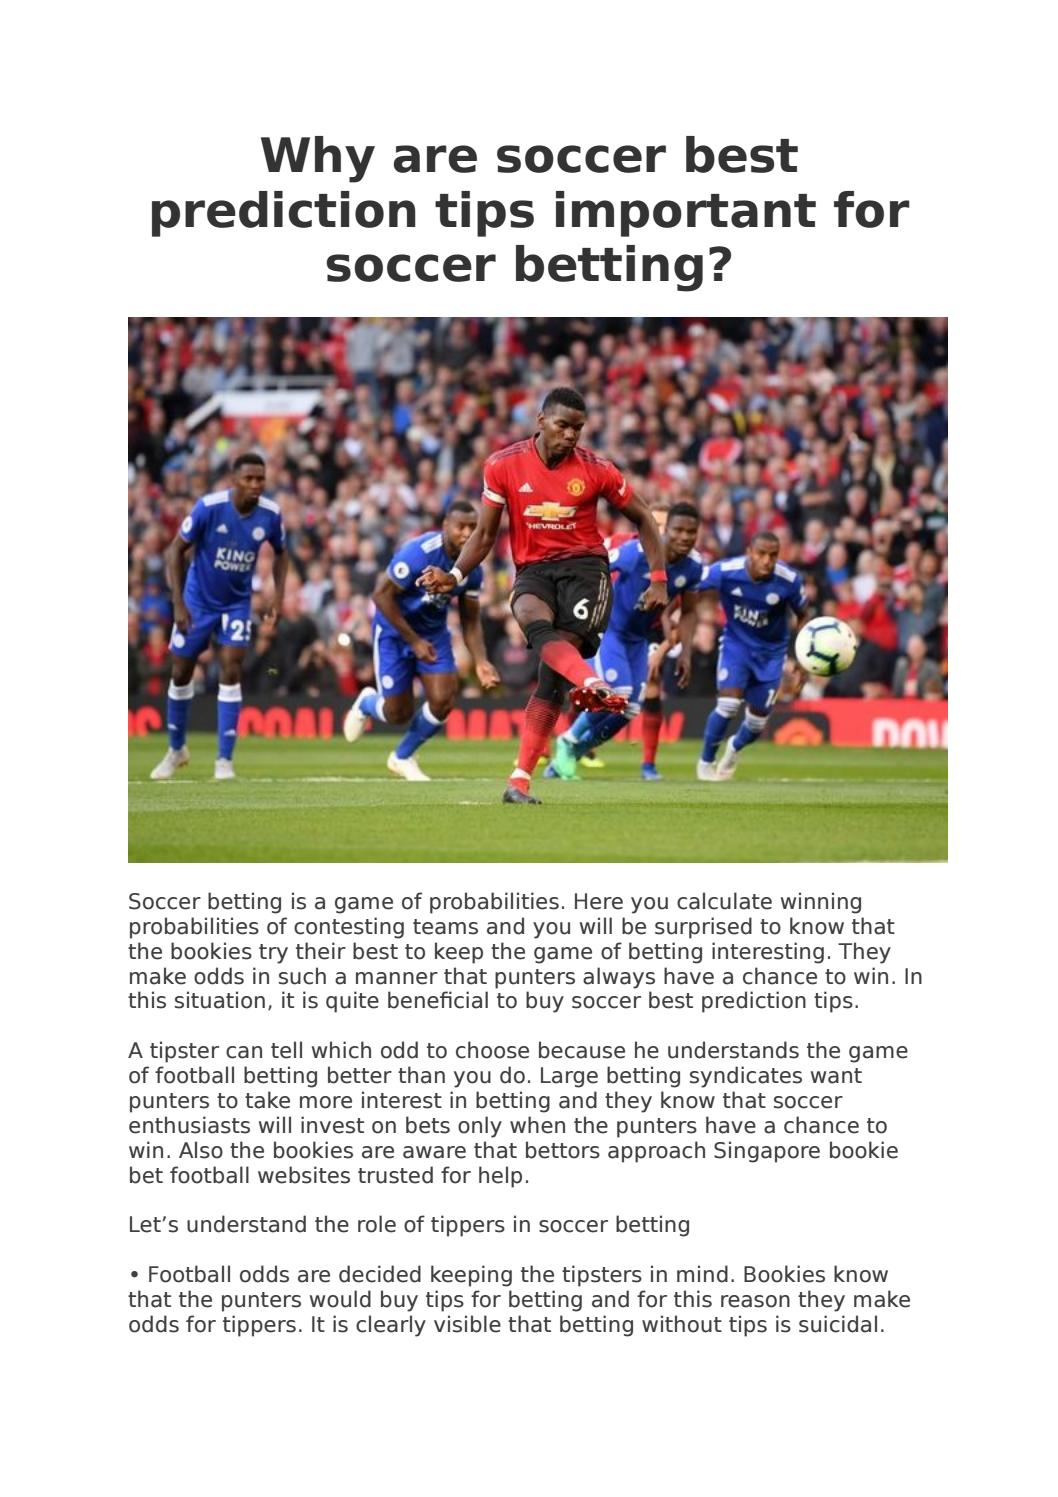 Why are soccer best prediction tips important for soccer